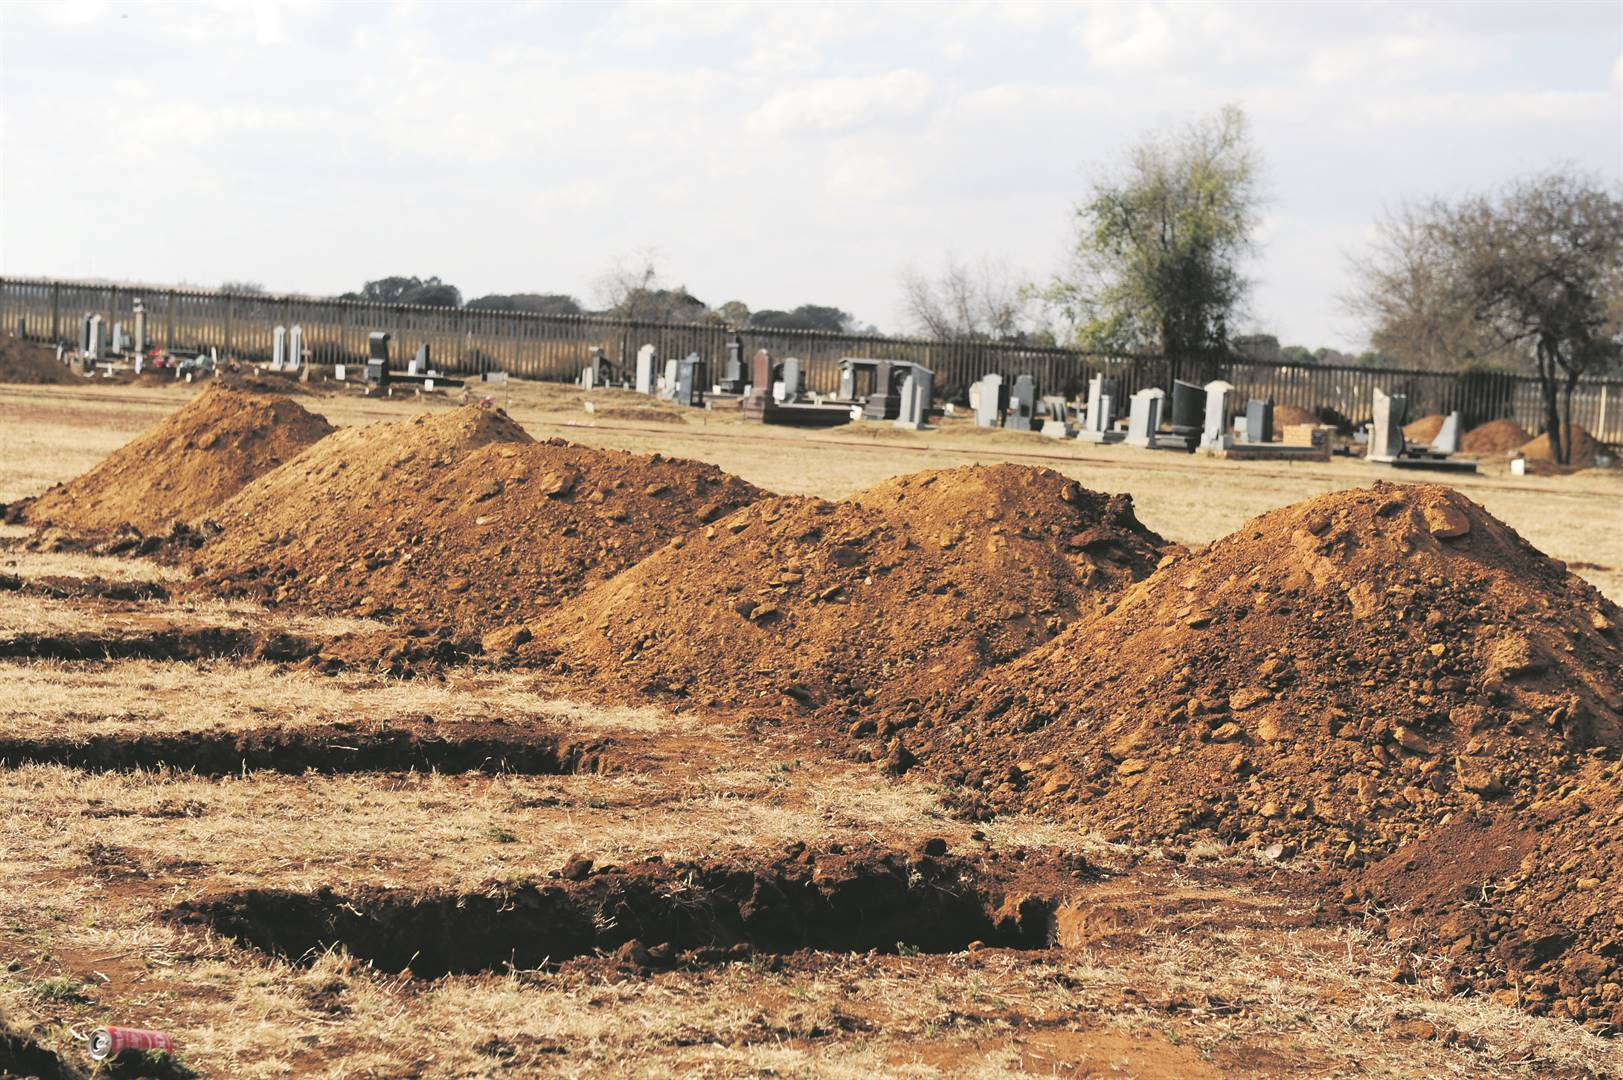 Honingnestkrans Cemetery in Pretoria is among the sites where graves are being prepared for Covid-19 deaths in Gauteng. Picture: Rosetta Msimango/City Press